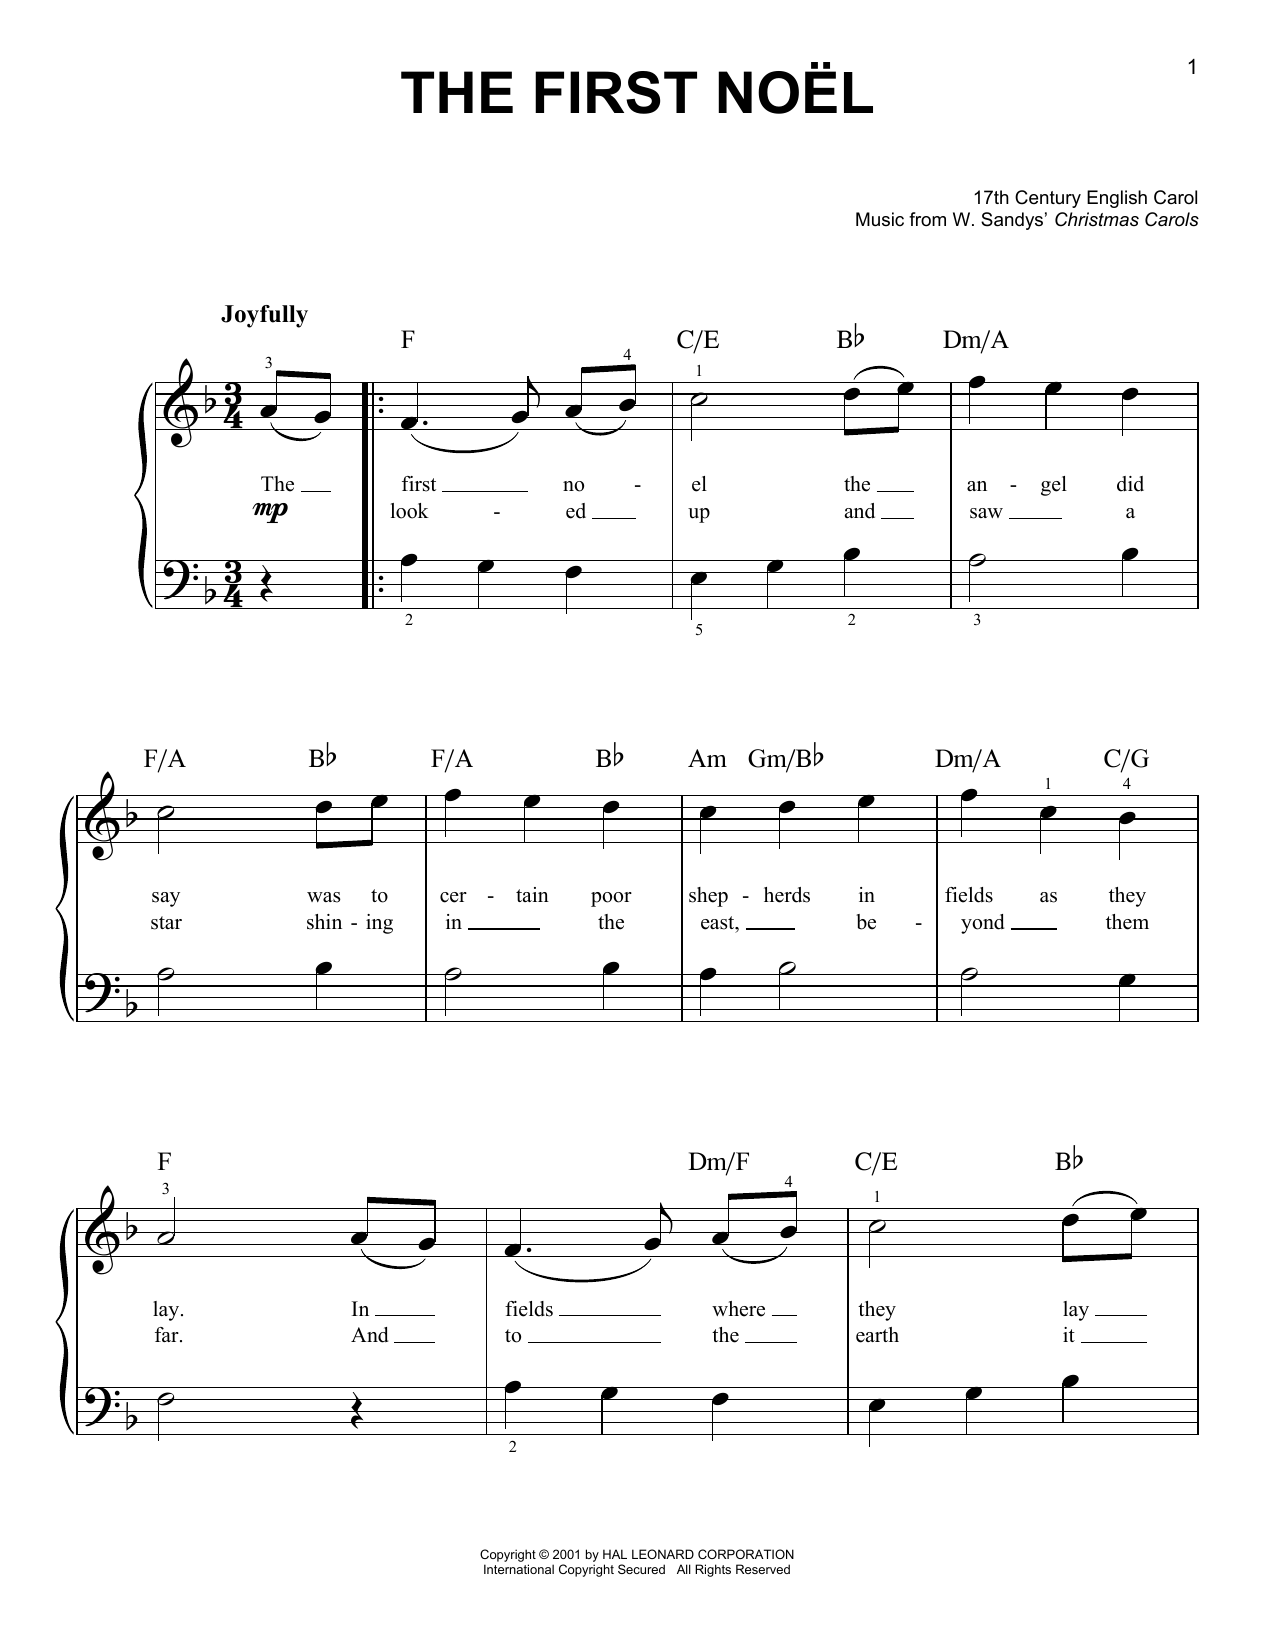 W. Sandys' Christmas Carols The First Noel sheet music notes and chords